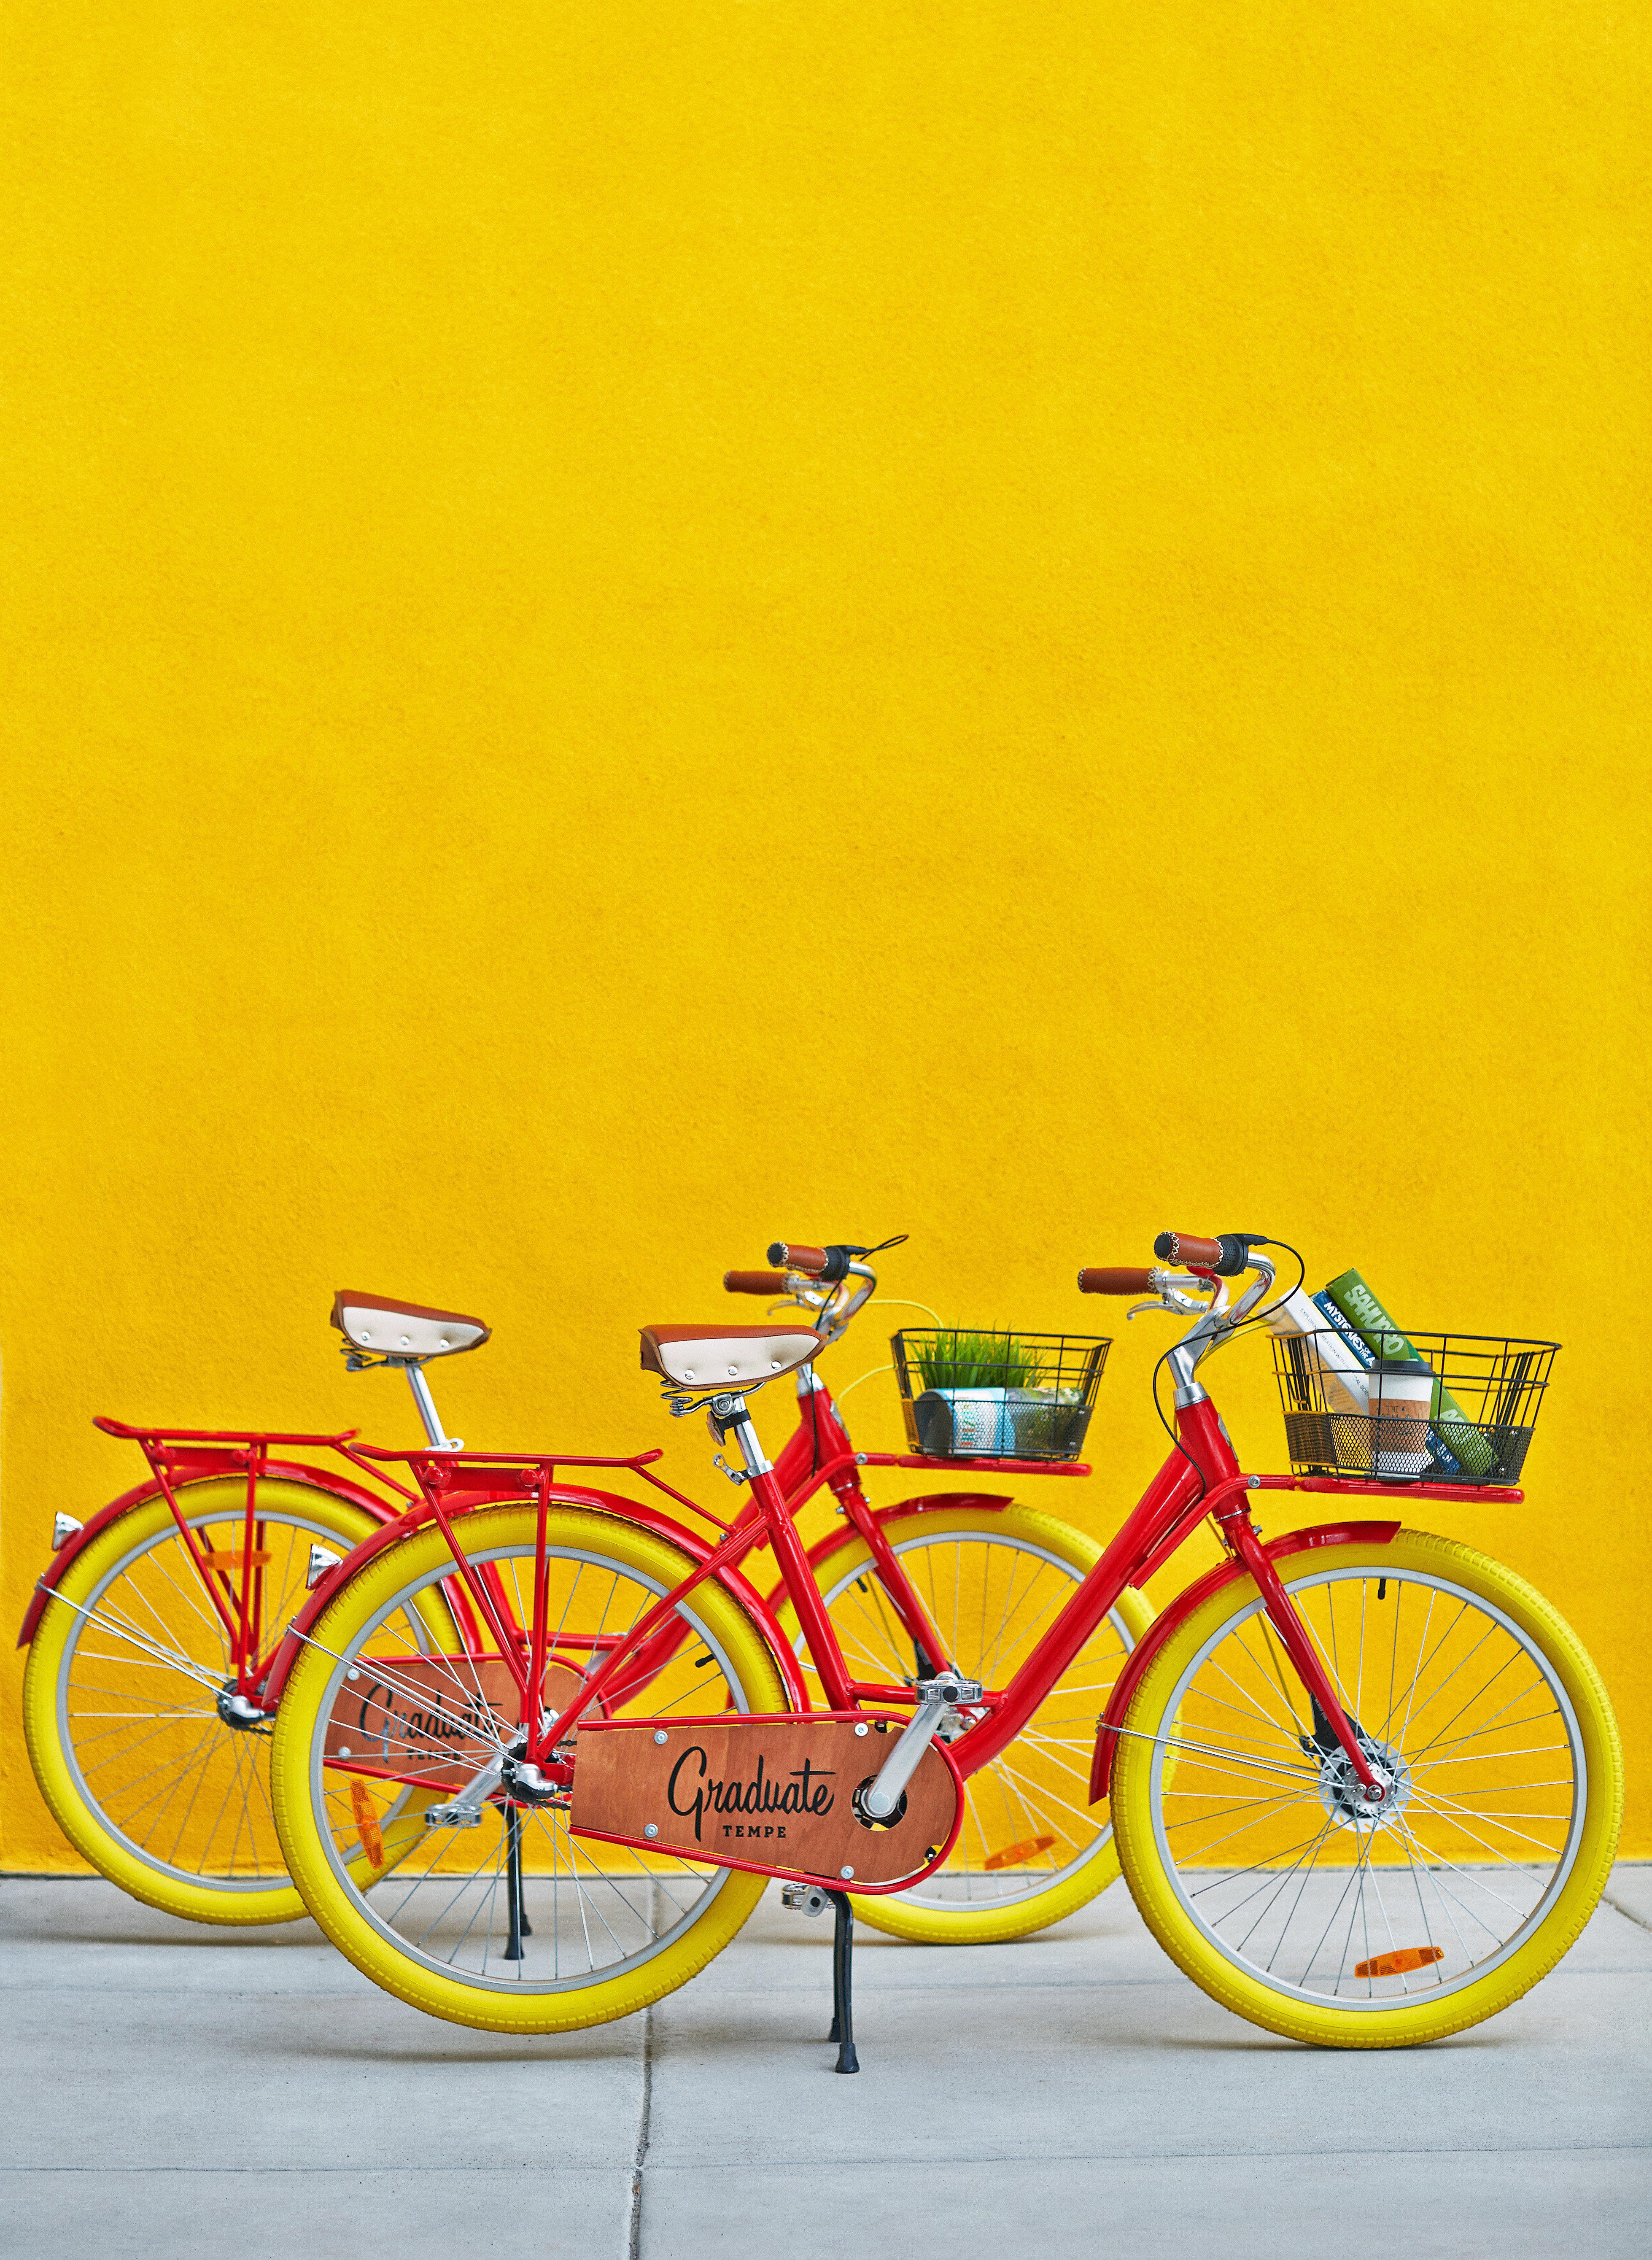 Budget Hip bicycle yellow parked color vehicle land vehicle wheel sports equipment transport art orange illustration